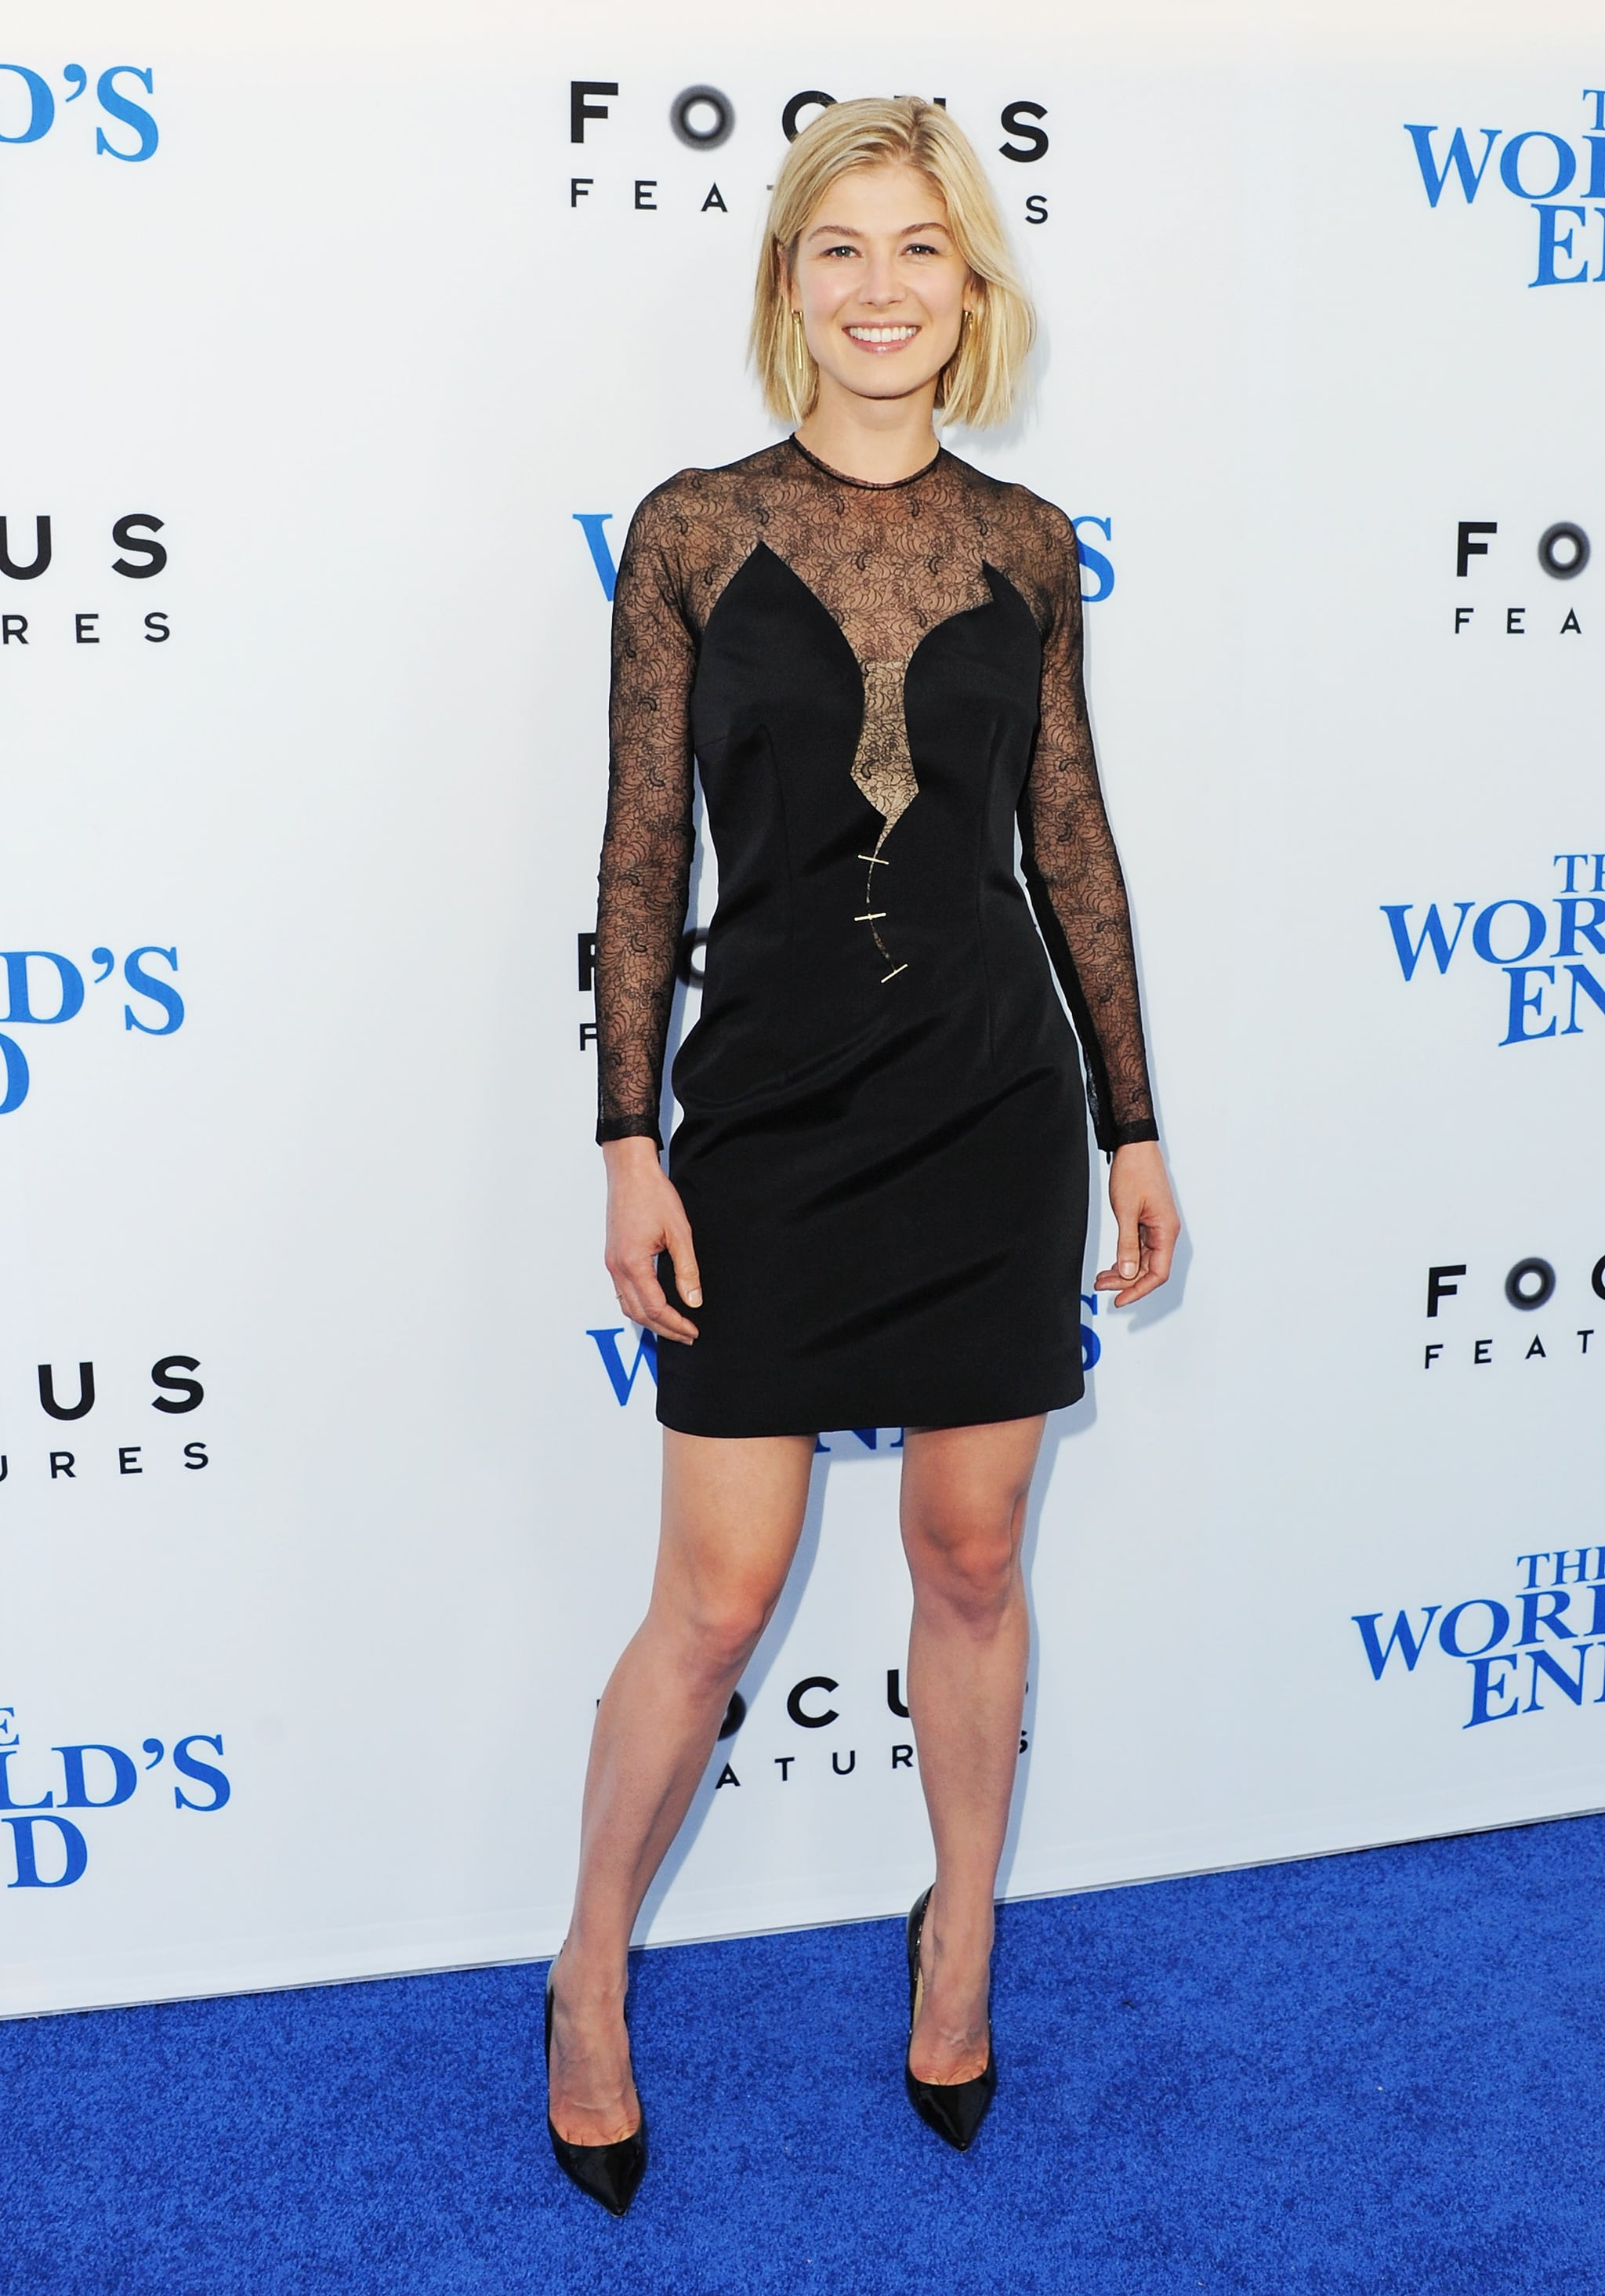 Rosamund Pike worked her curves in Marios Schwab's illusion LBD at the LA premiere of The World's End.